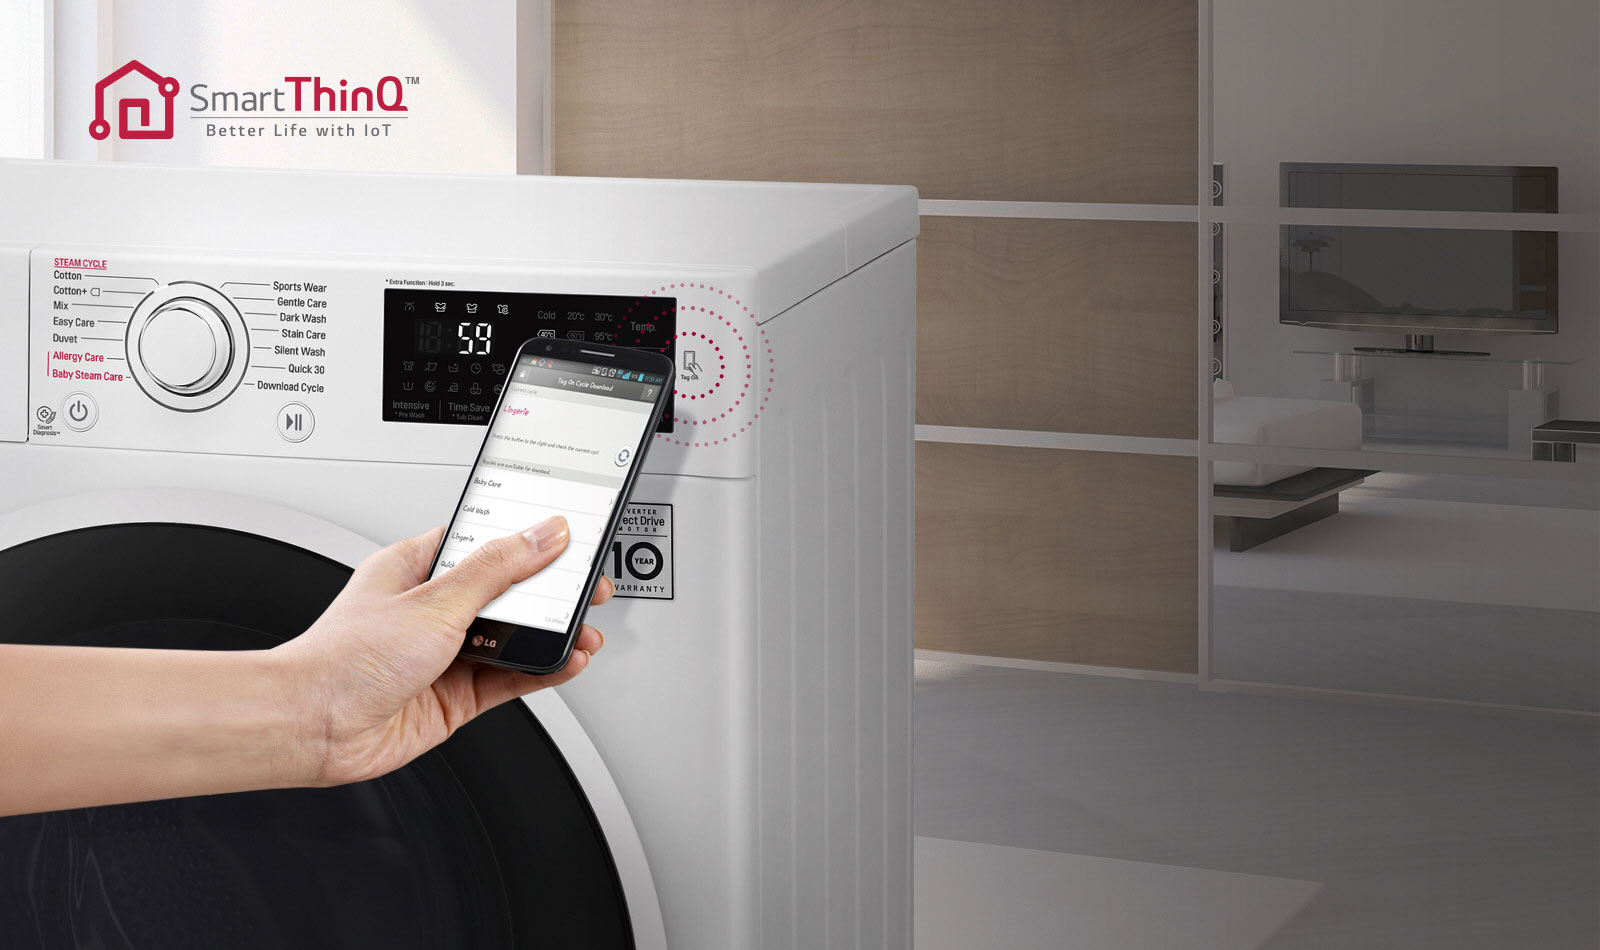 Smart Convenience with NFC1